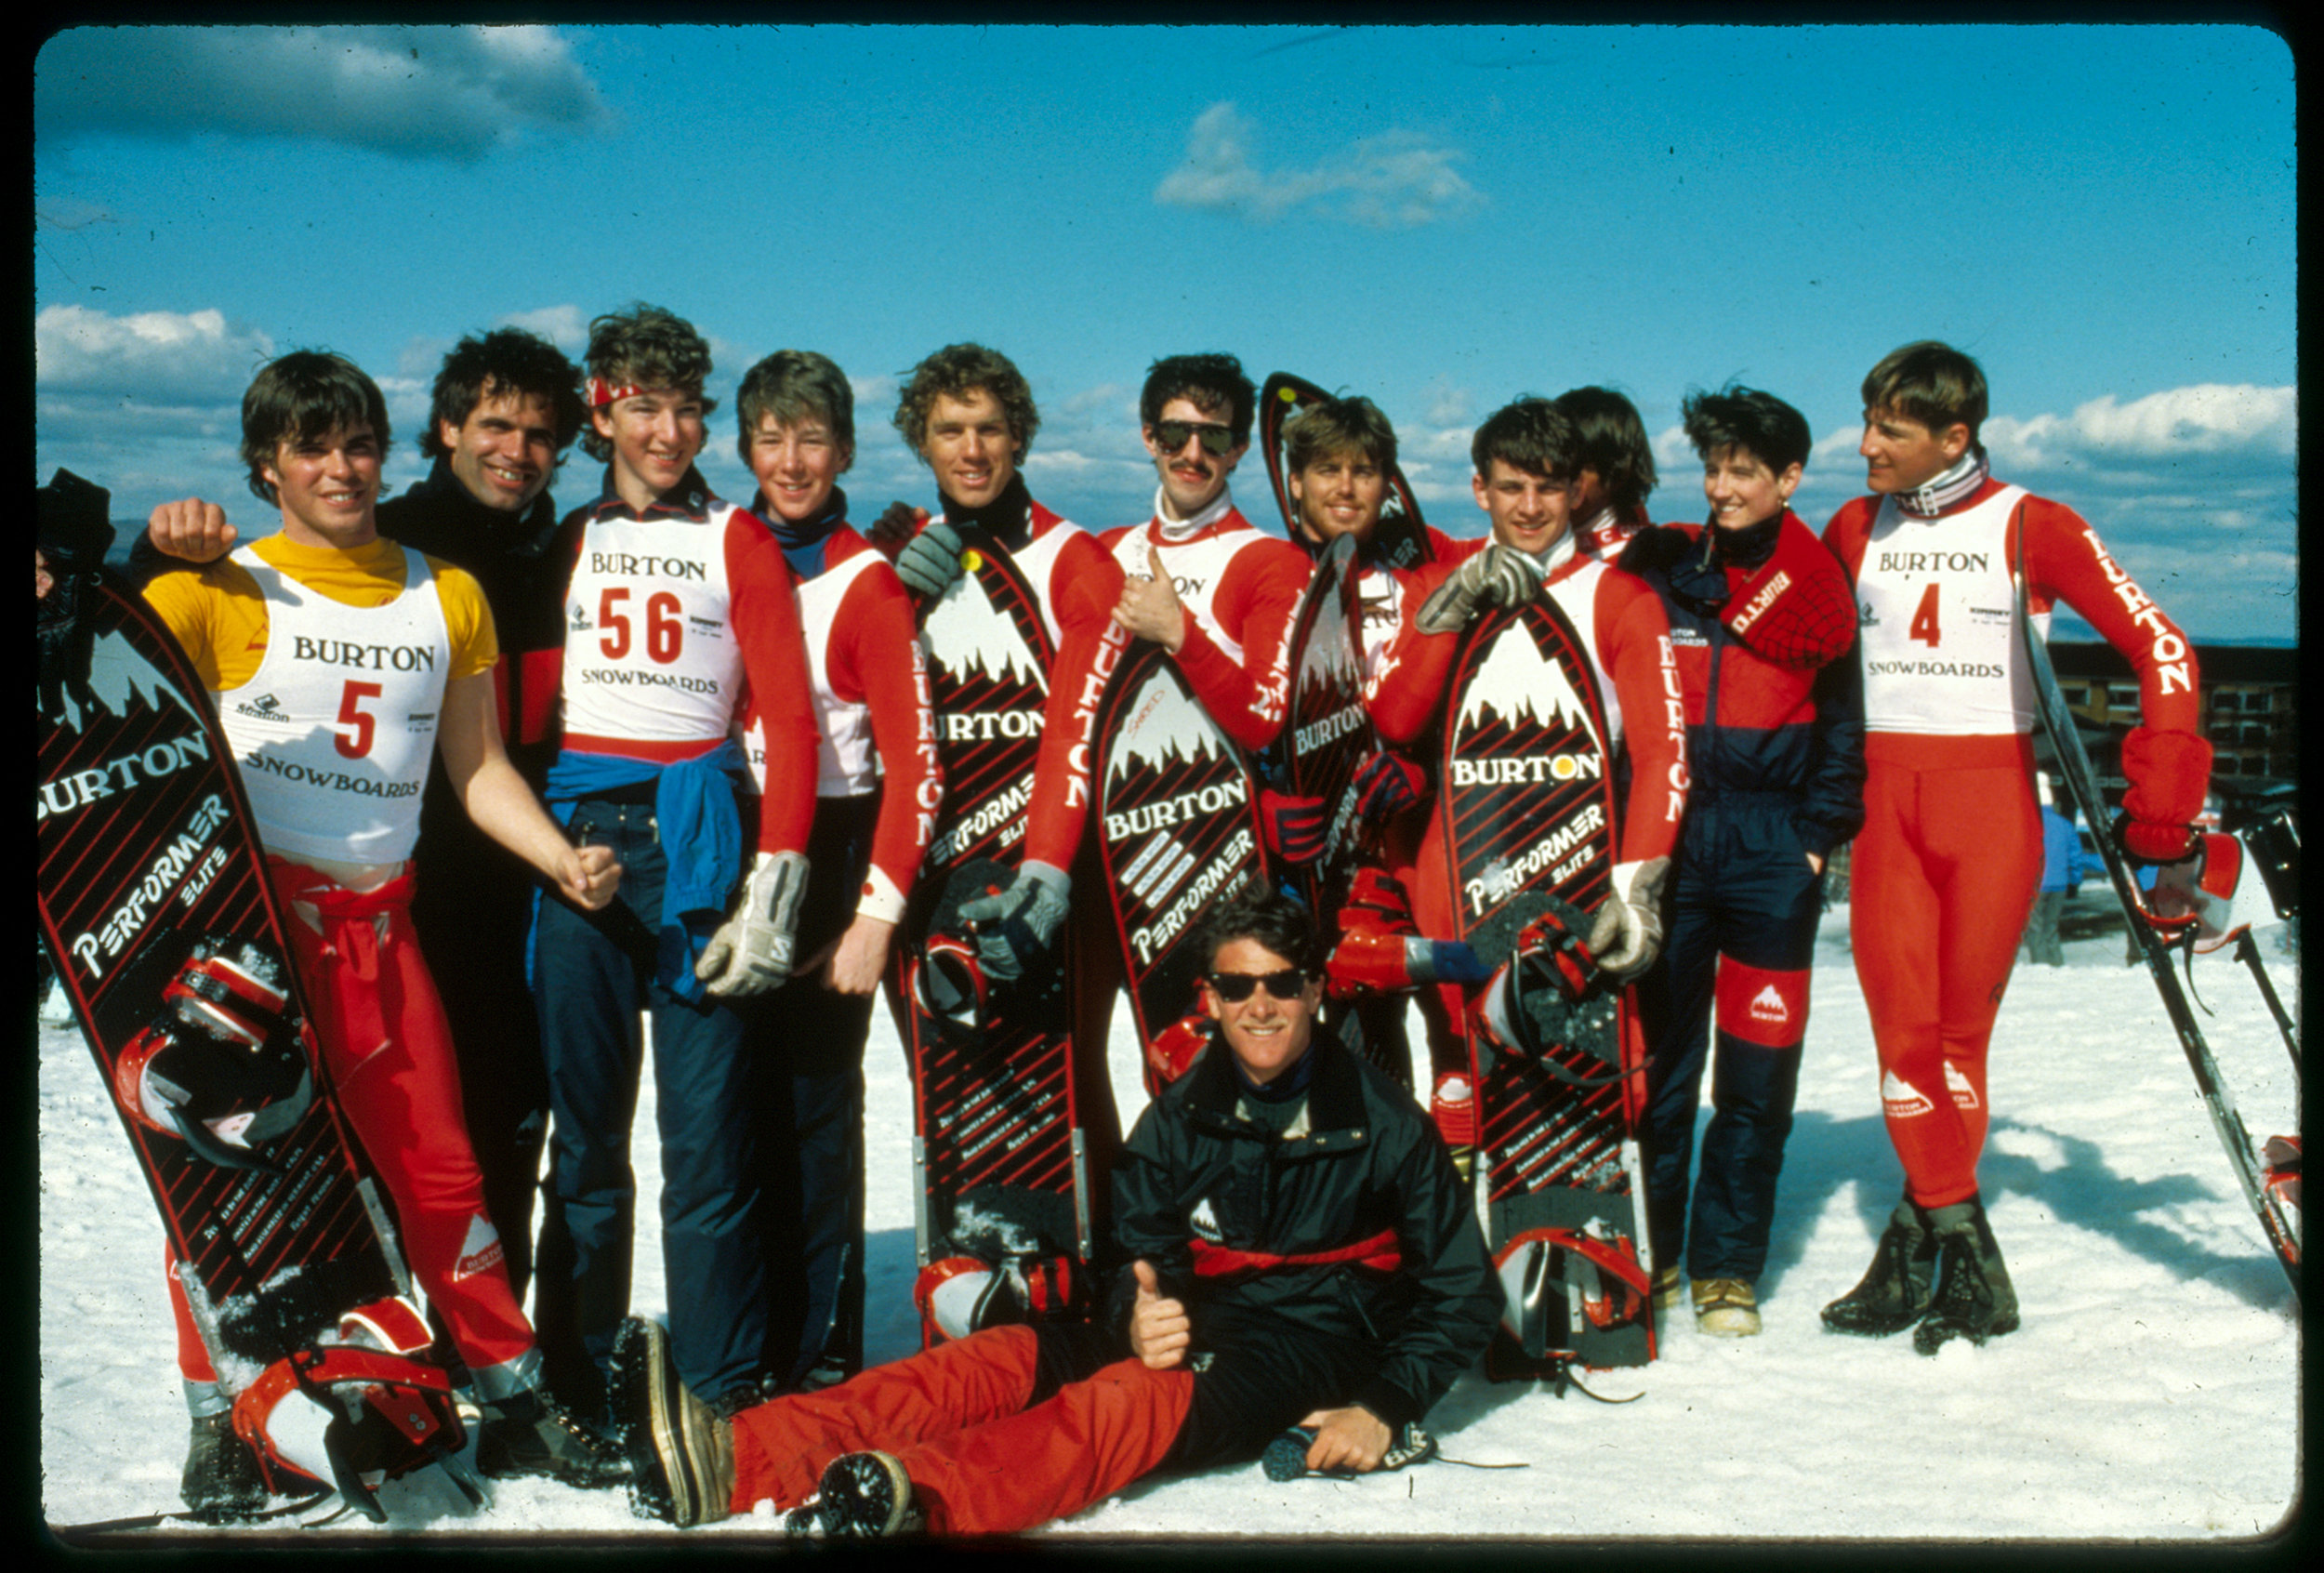 Burton Team at Stratton, 1984